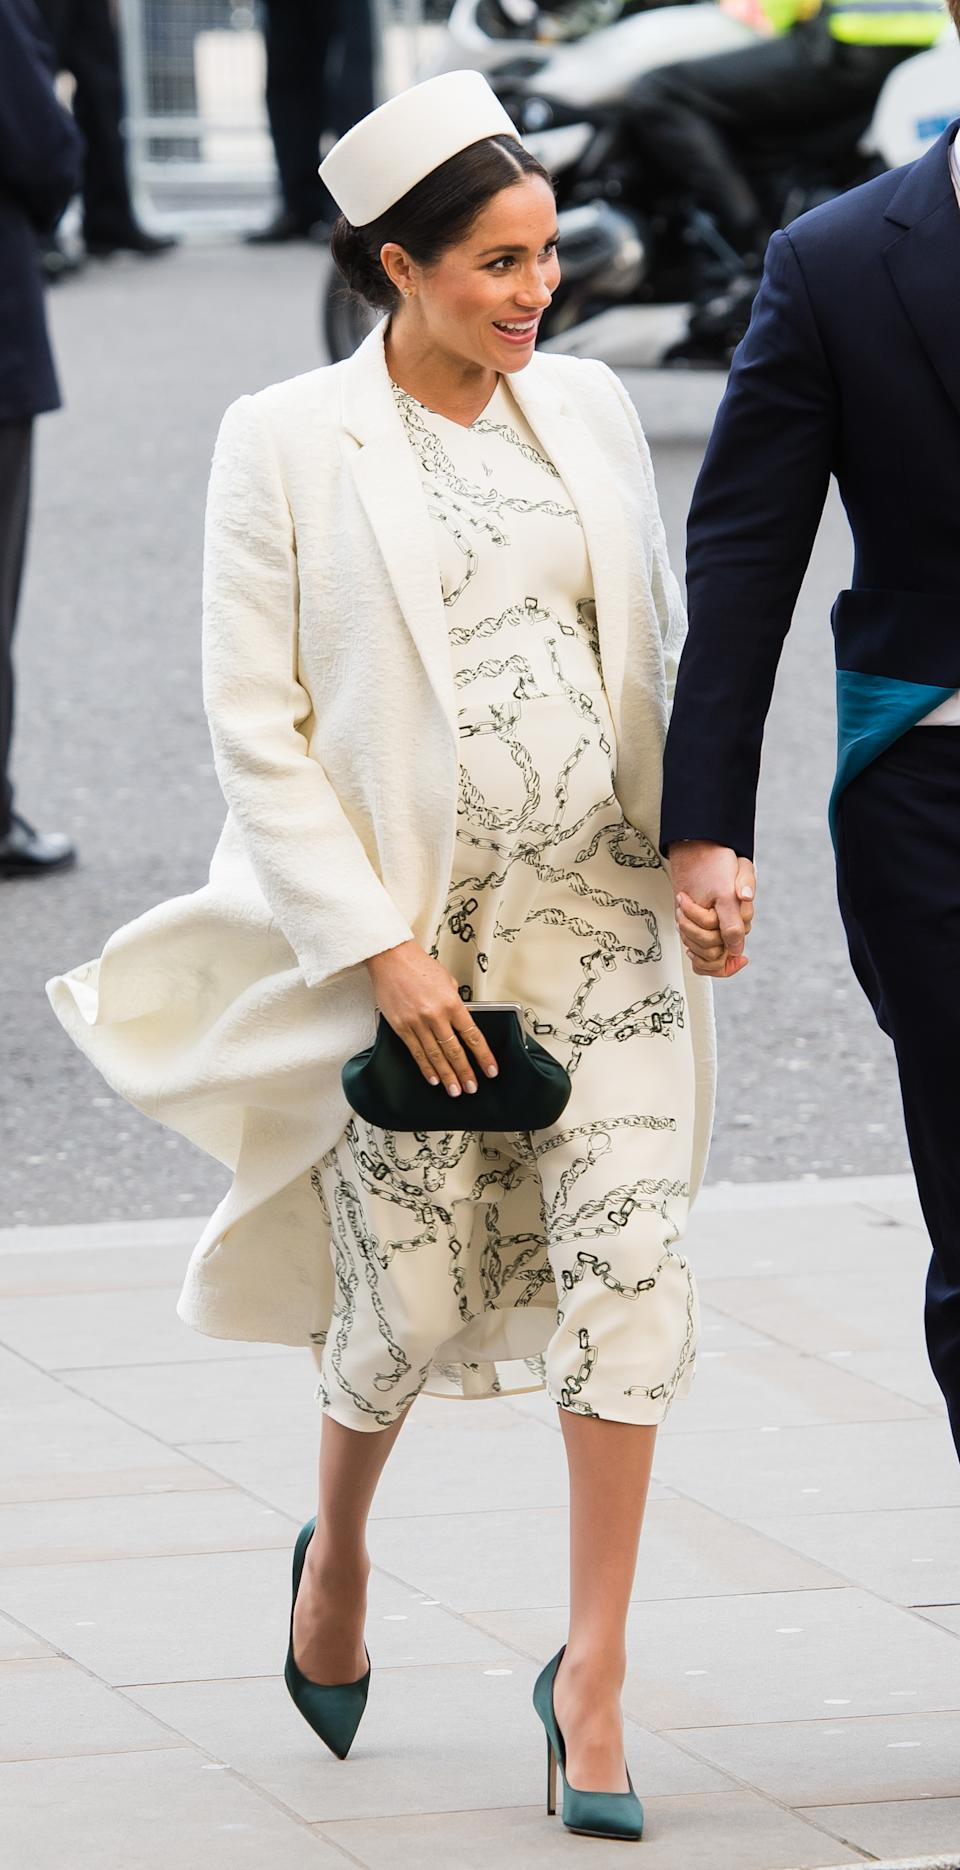 Markle wore all white, yet again, for Commonwealth Day 2019. However, this dress had some more detail. (Photo: Getty Images)